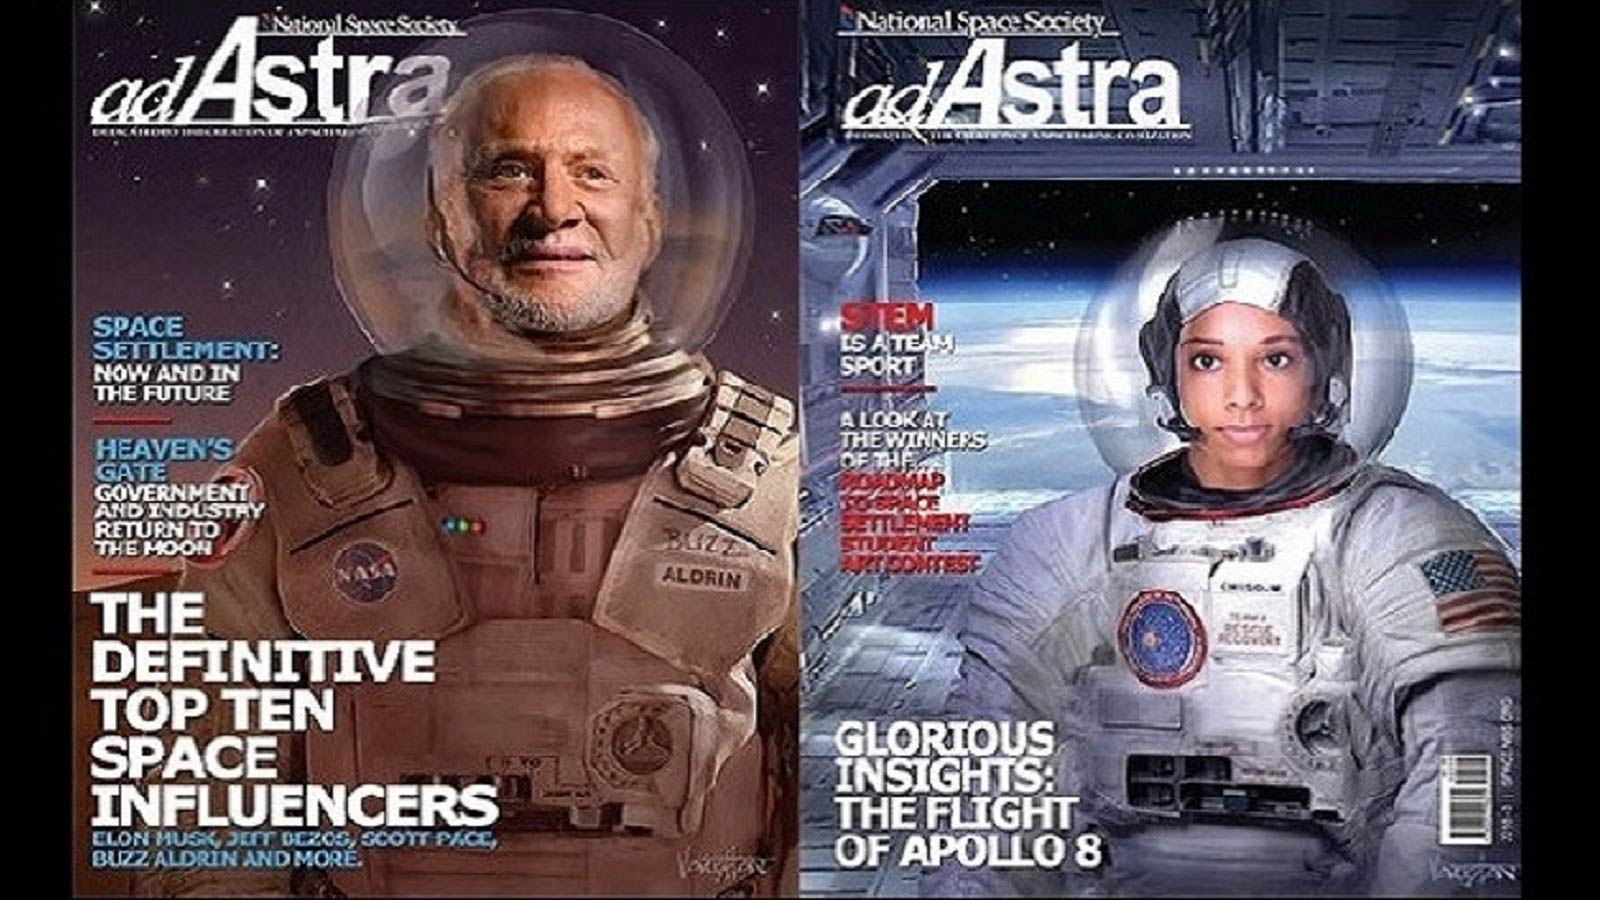 Covers of Ad Astra magazine